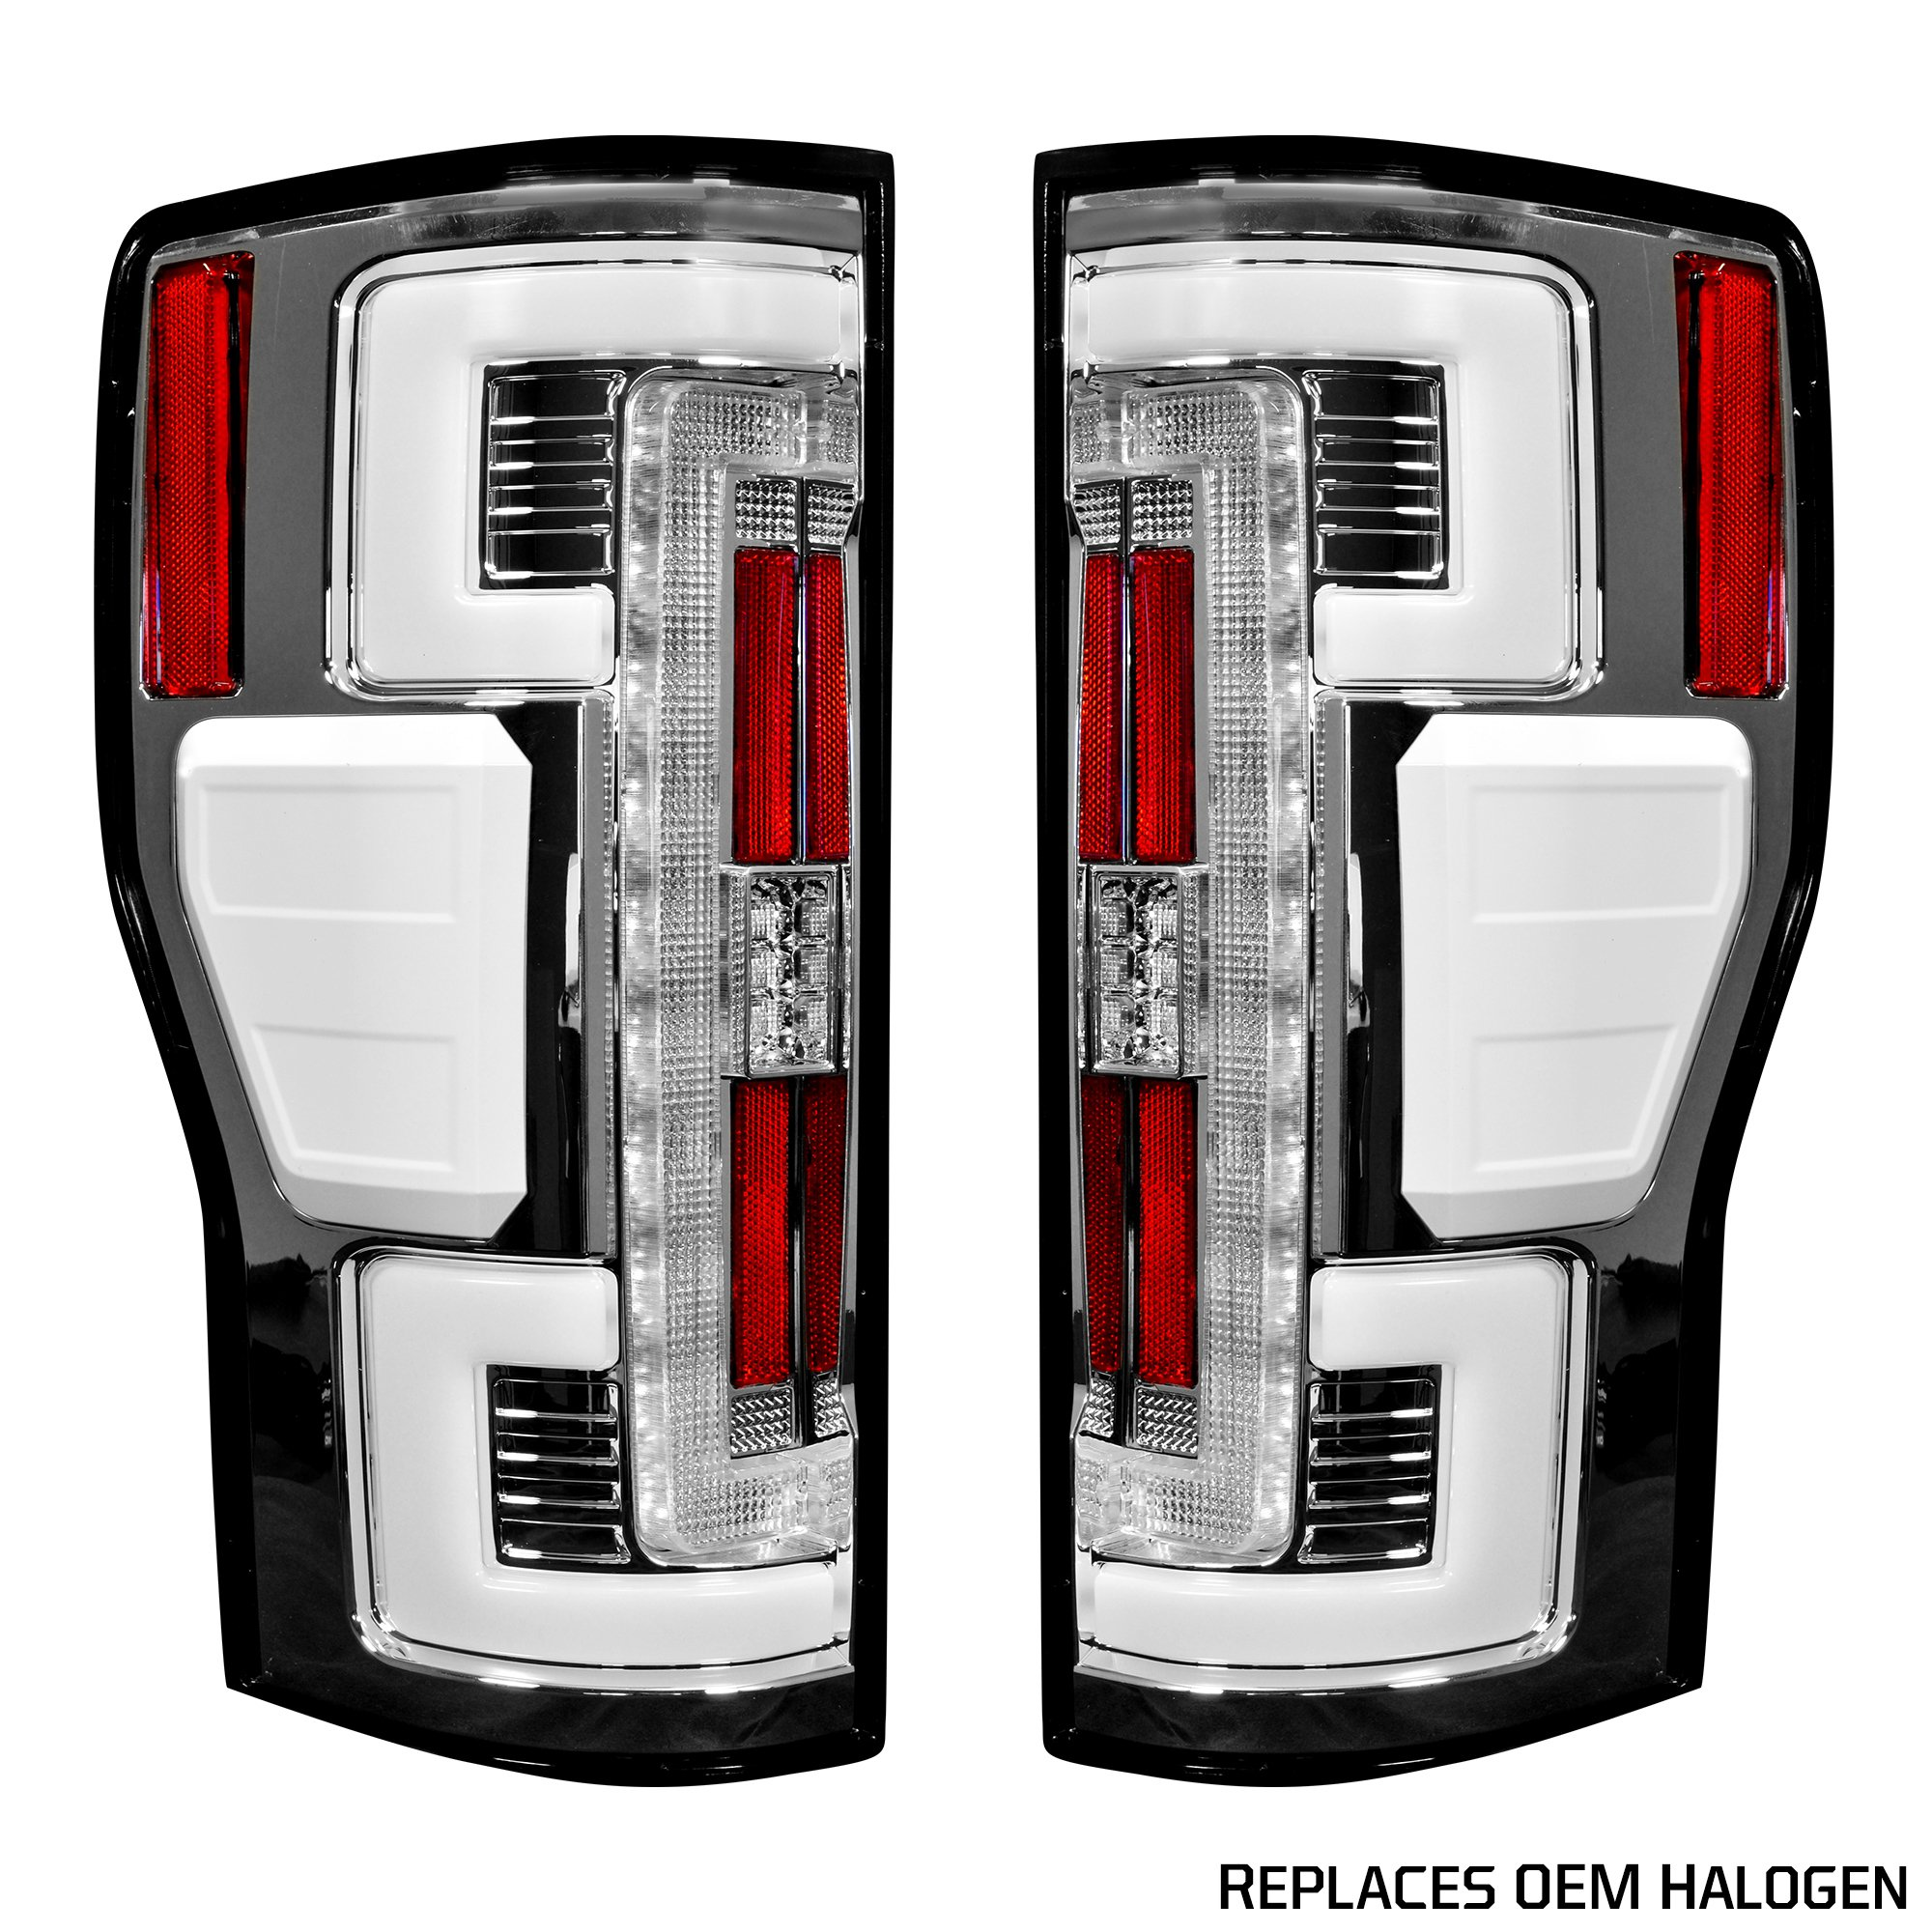 hight resolution of recon 264299cl ford superduty f250 350 450 550 17 19 replaces oem halogen style tail lights with or without blis blind spot warning system oled tail